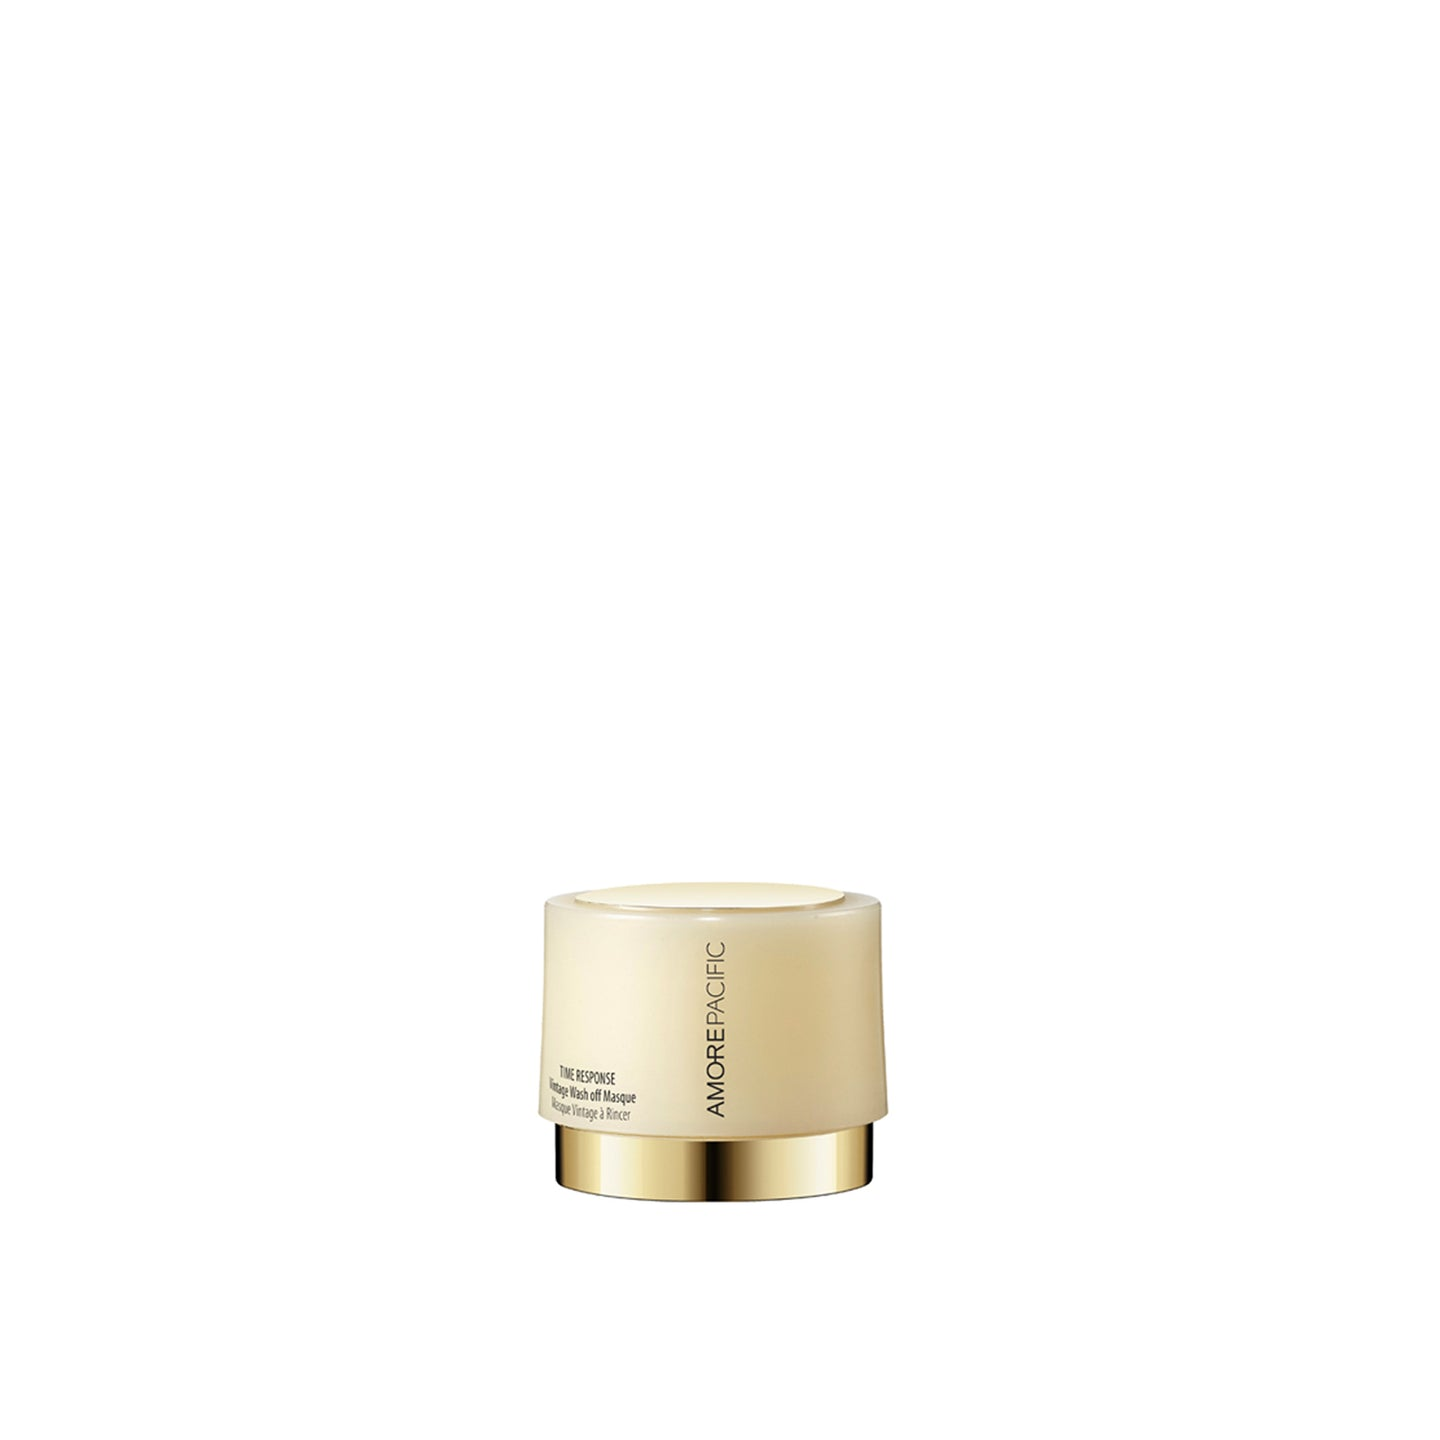 TIME RESPONSE Vintage Wash Off Masque (3ml)